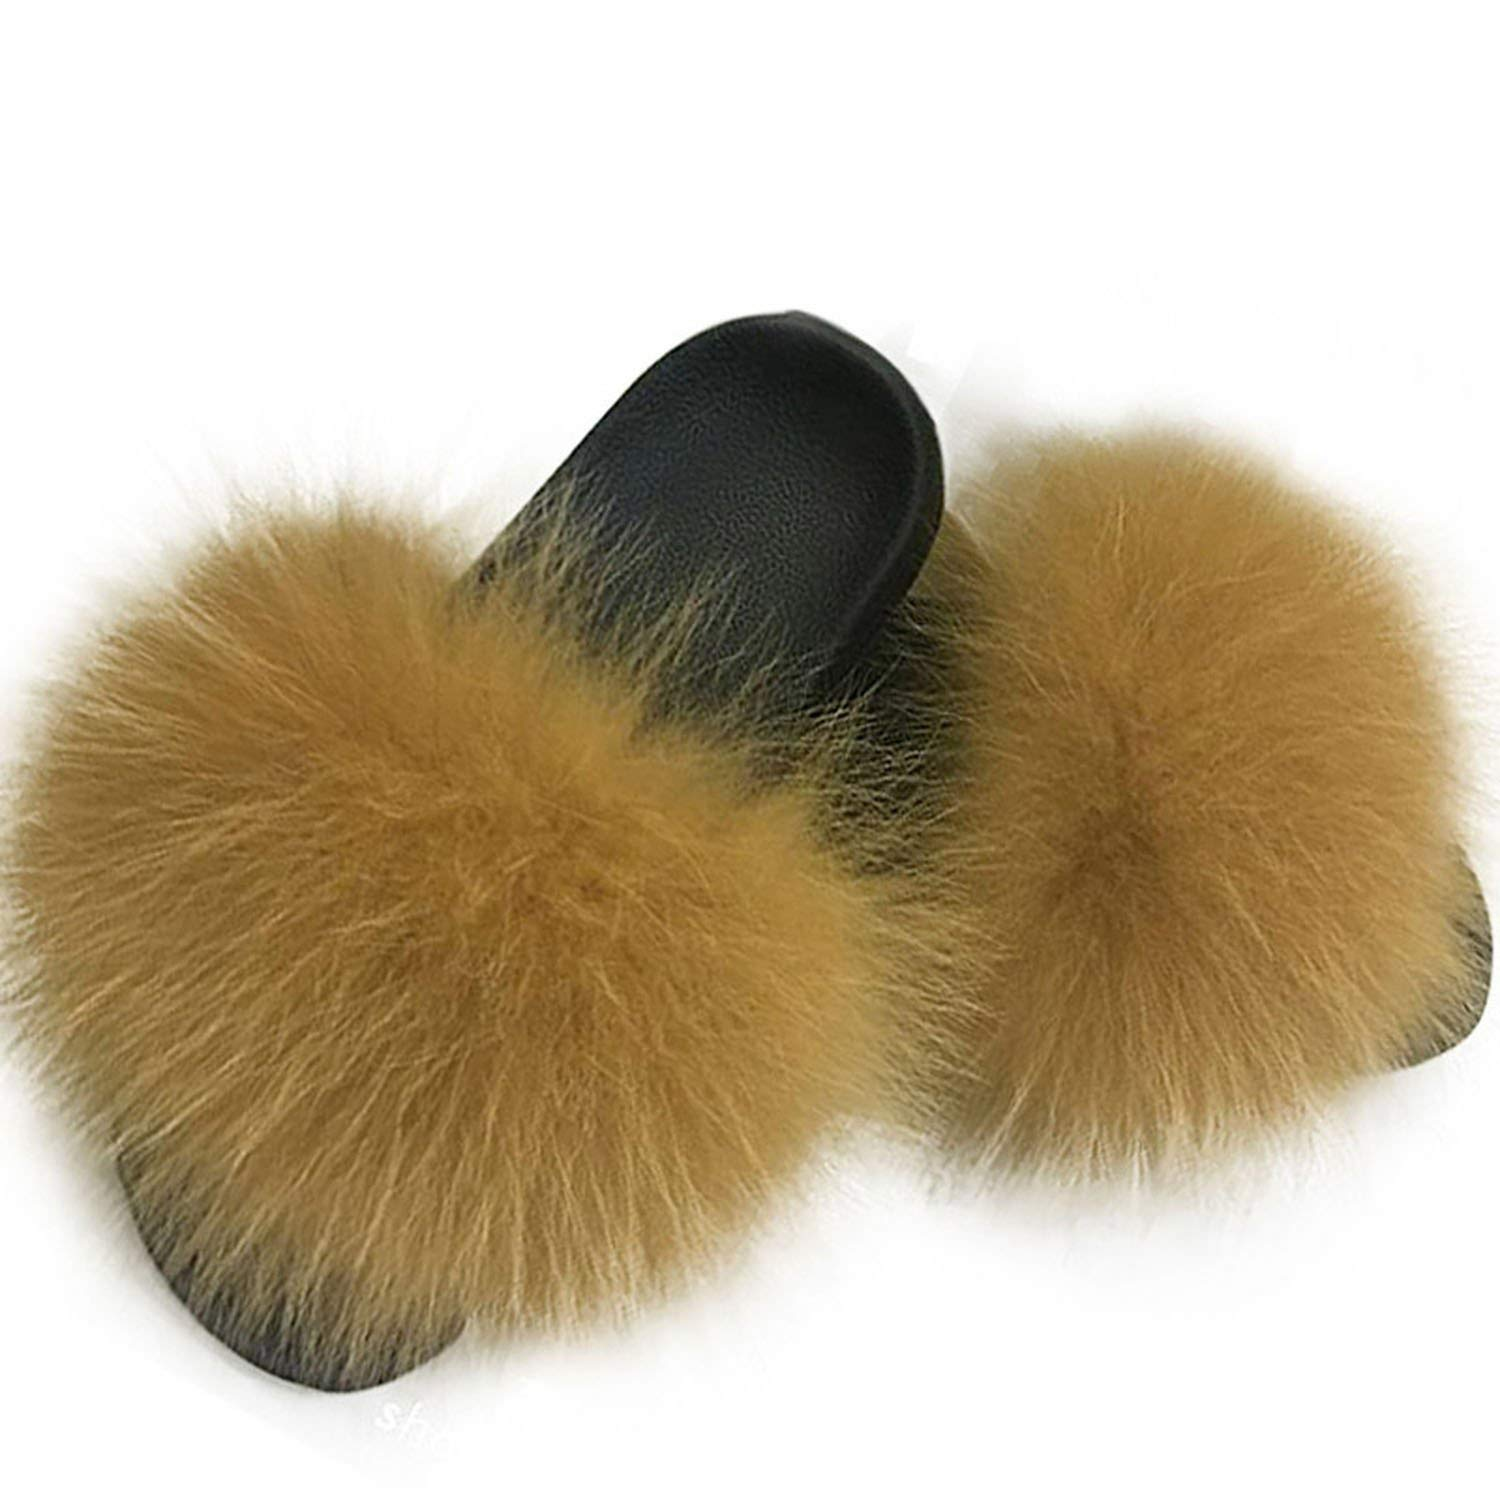 a2955a87f Get Quotations · Baolustre Women's Furry Slippers Cute Plush Fox Hair Fluffy  Fur Slippers Winter Warm Slippers